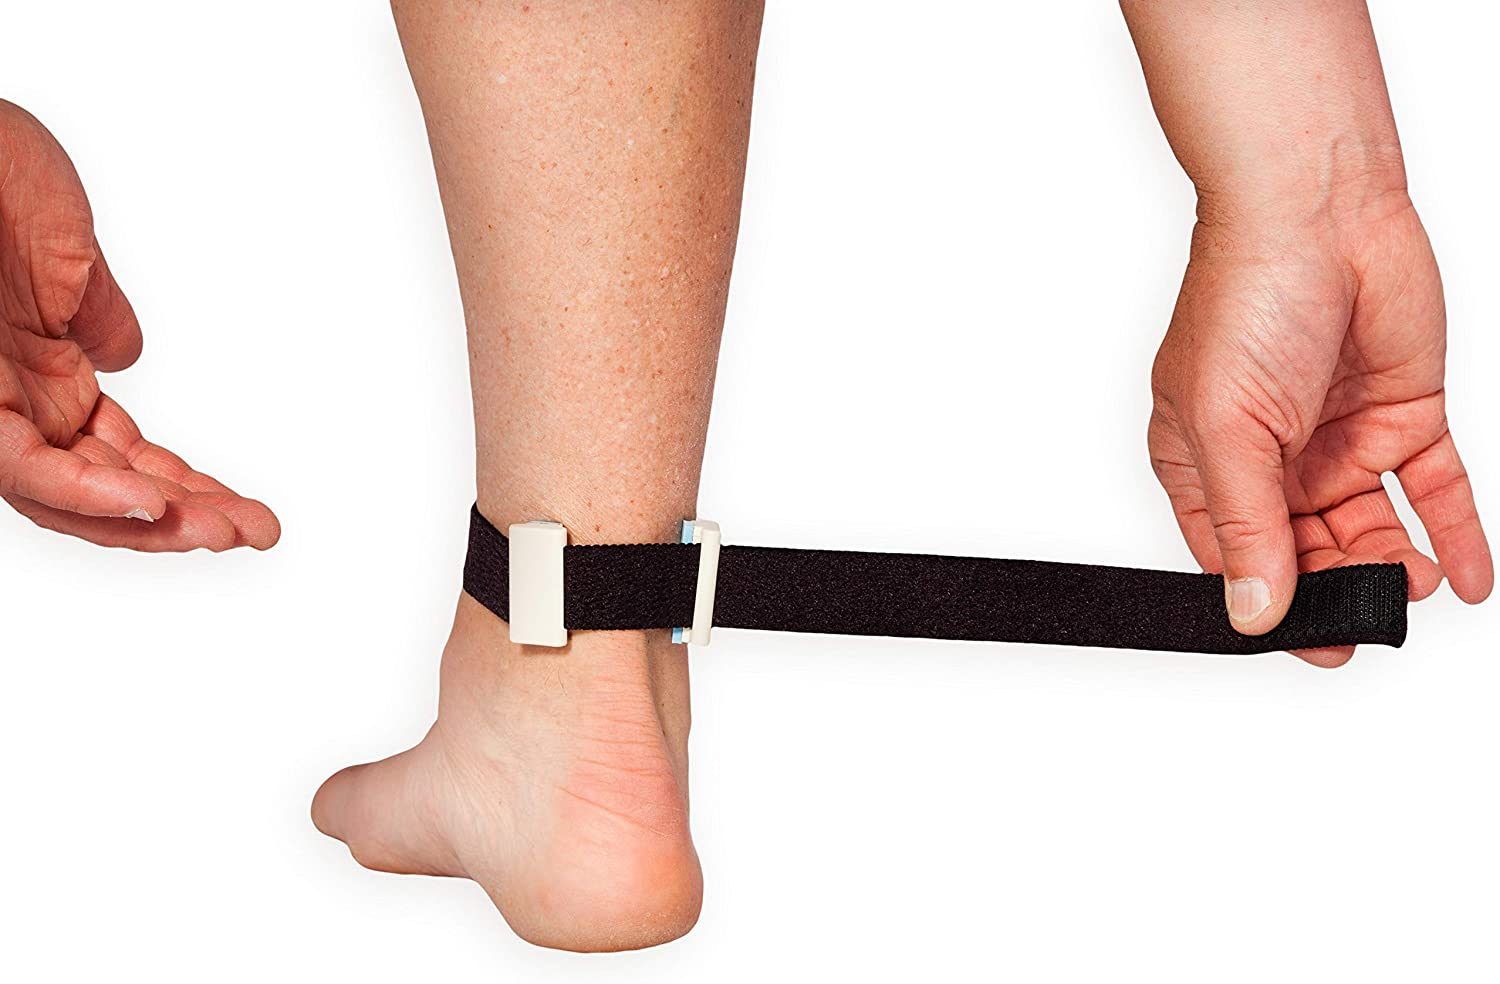 Provides IMMEDIATE relief for pain associated with Achilles Tendonitis and Severs Disease Tendon Trak Achilles